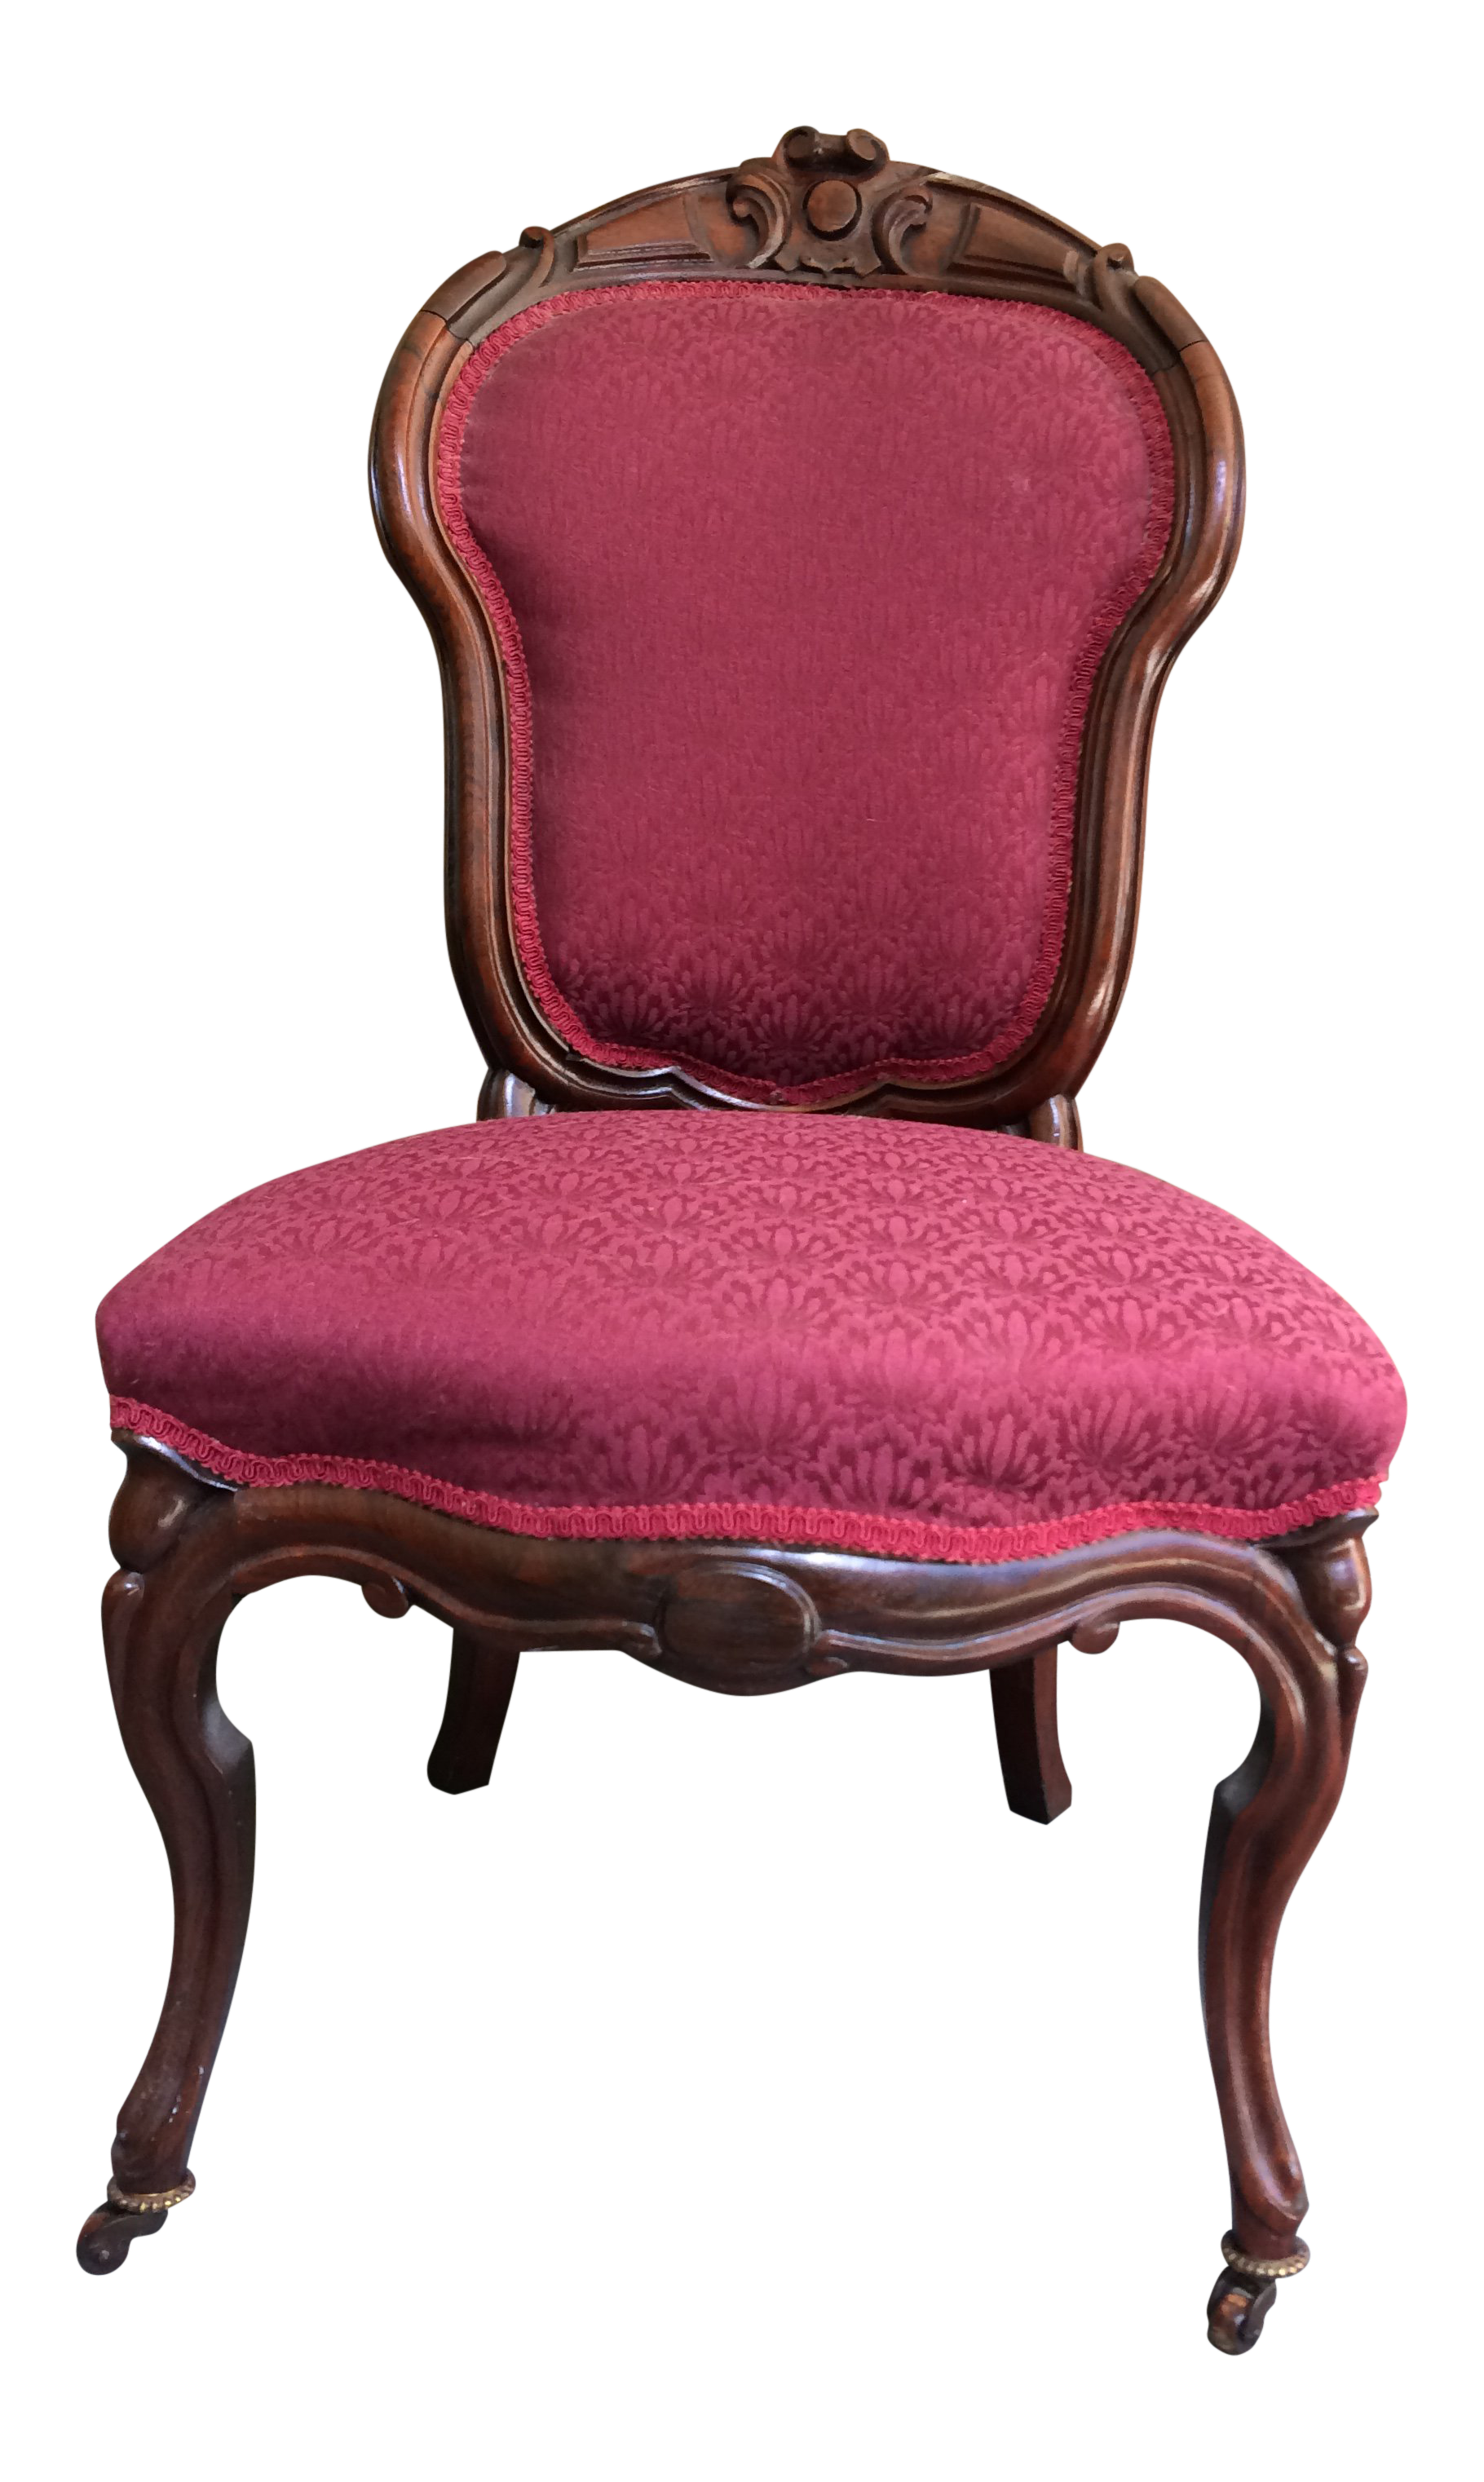 Superbe Early 20th Century Victorian Burgundy Upholstered Rosewood Ladies Chair